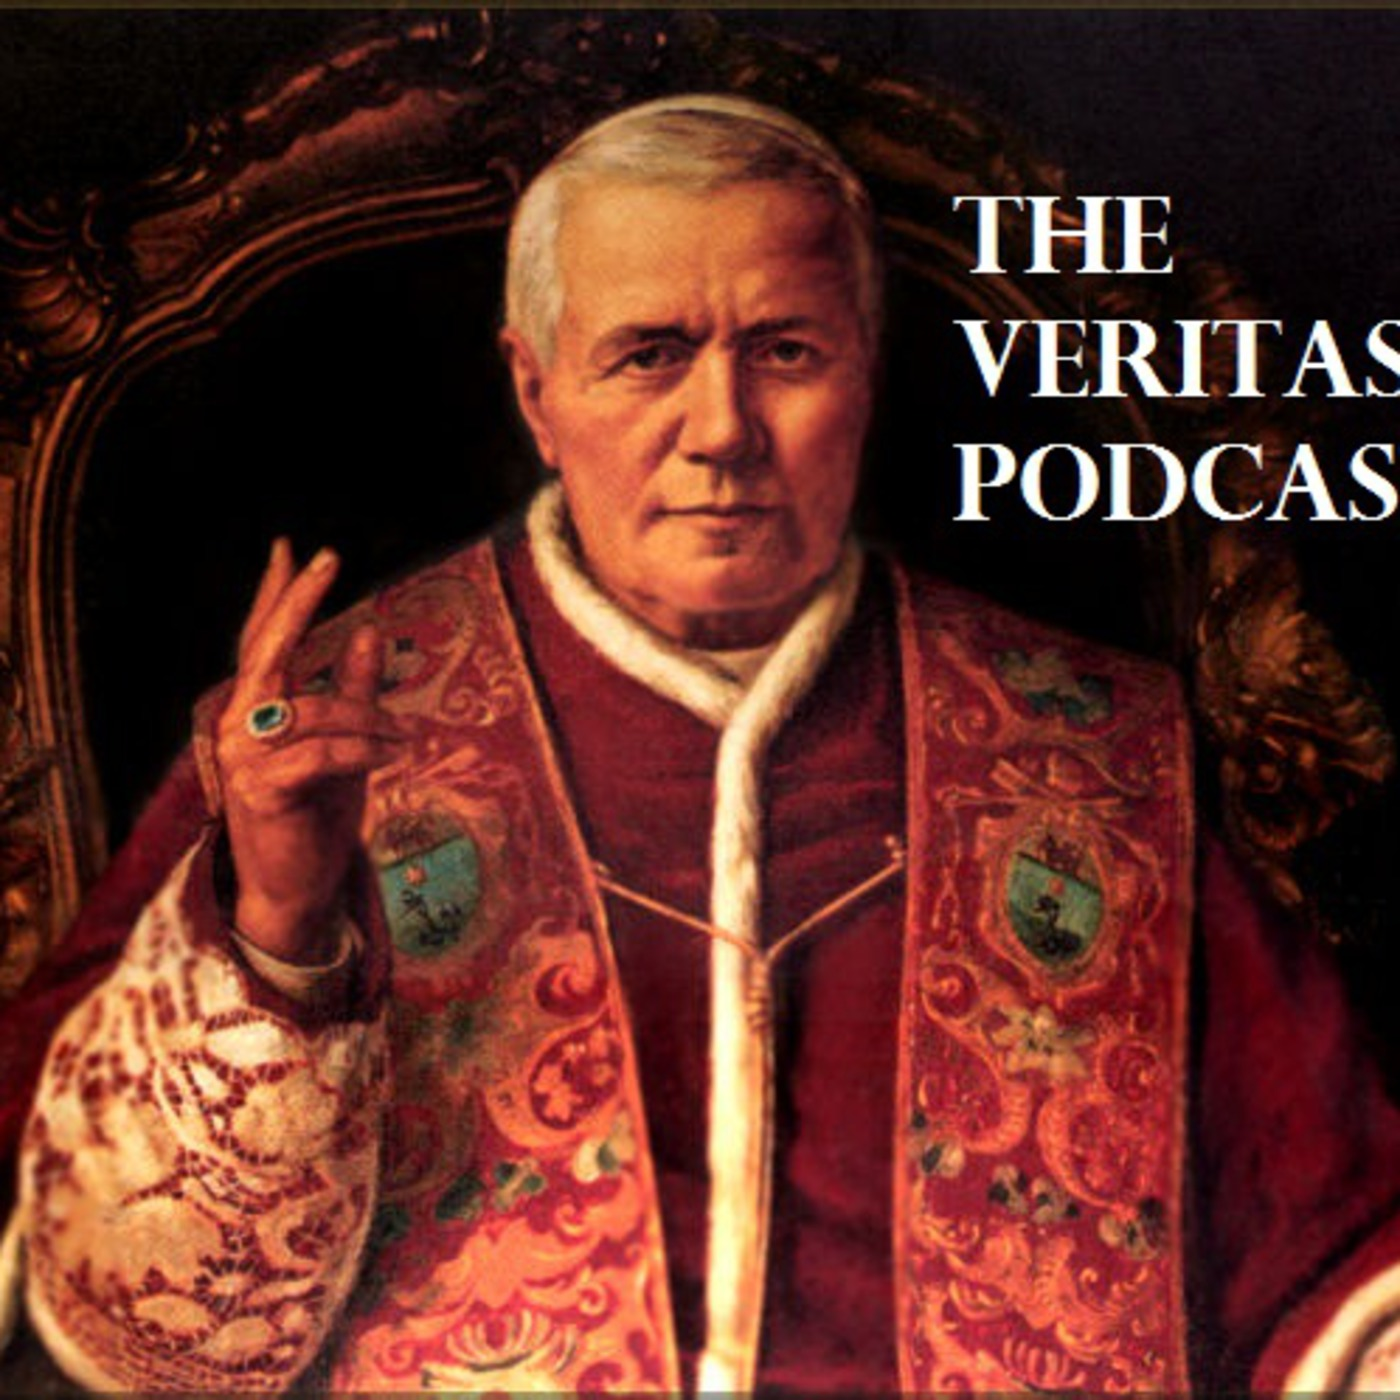 Veritas Podcast